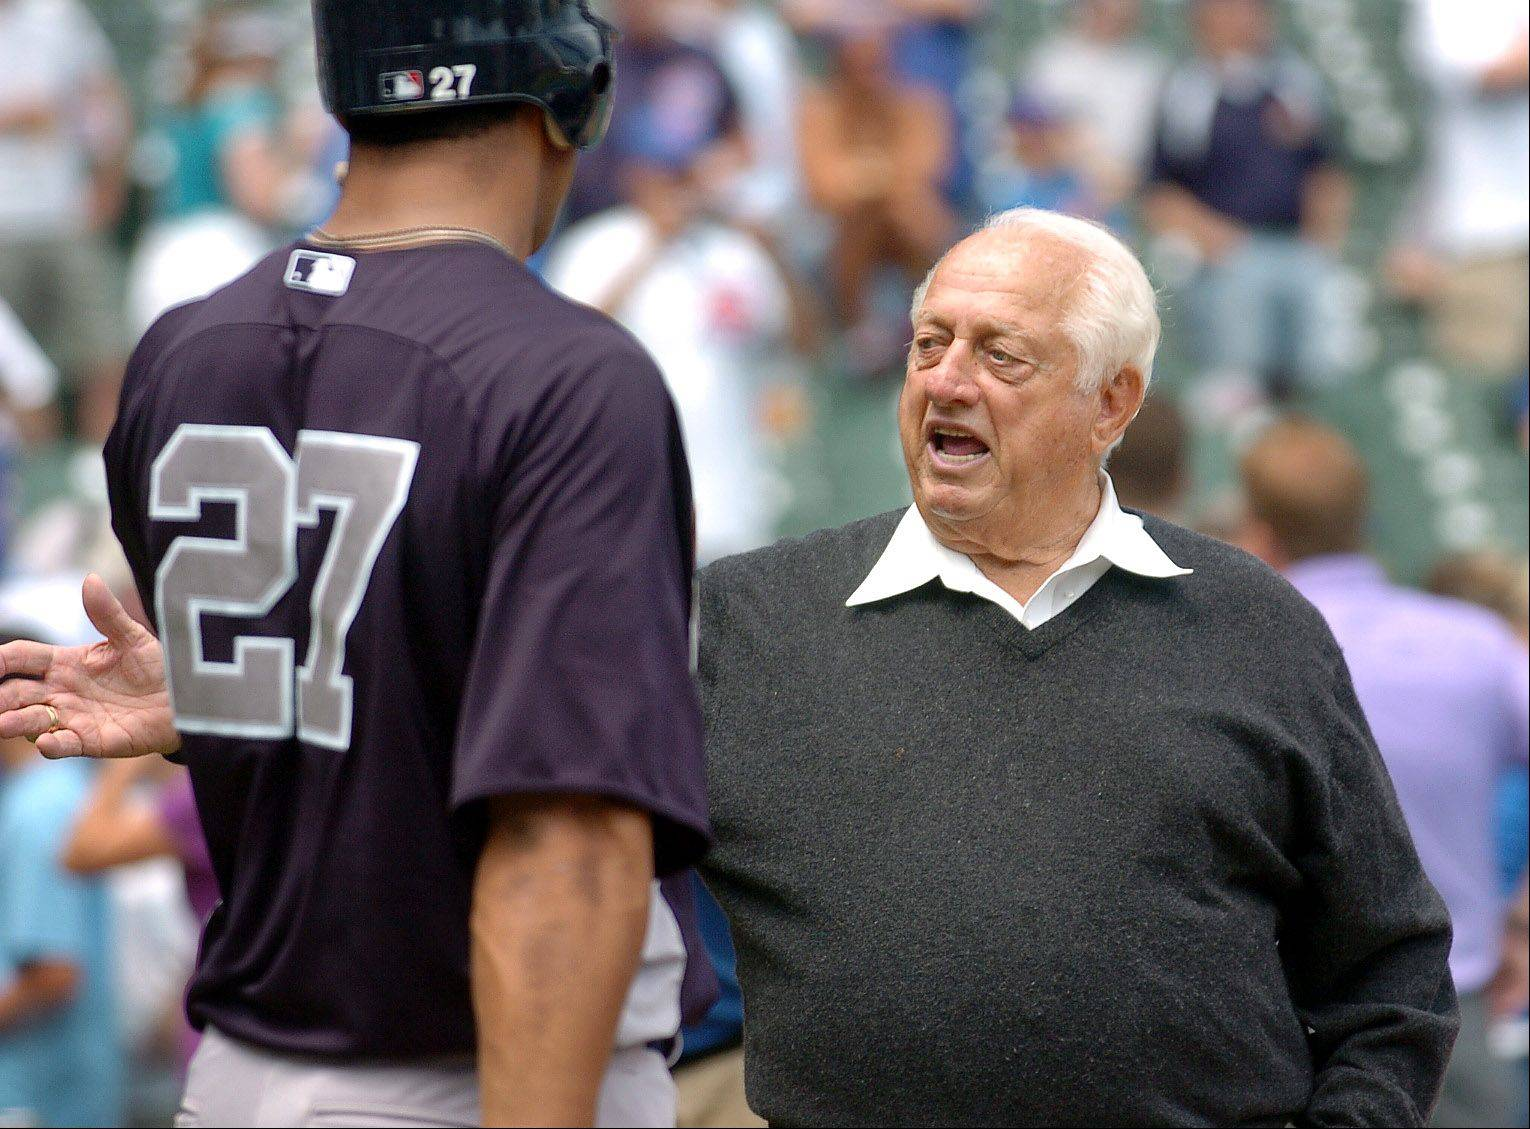 Former Dodgers manager Tommy Lasorda chats with Chris Dickerson of the Yankees during batting practice before the Cubs vs. Yankees at Wrigley Field.